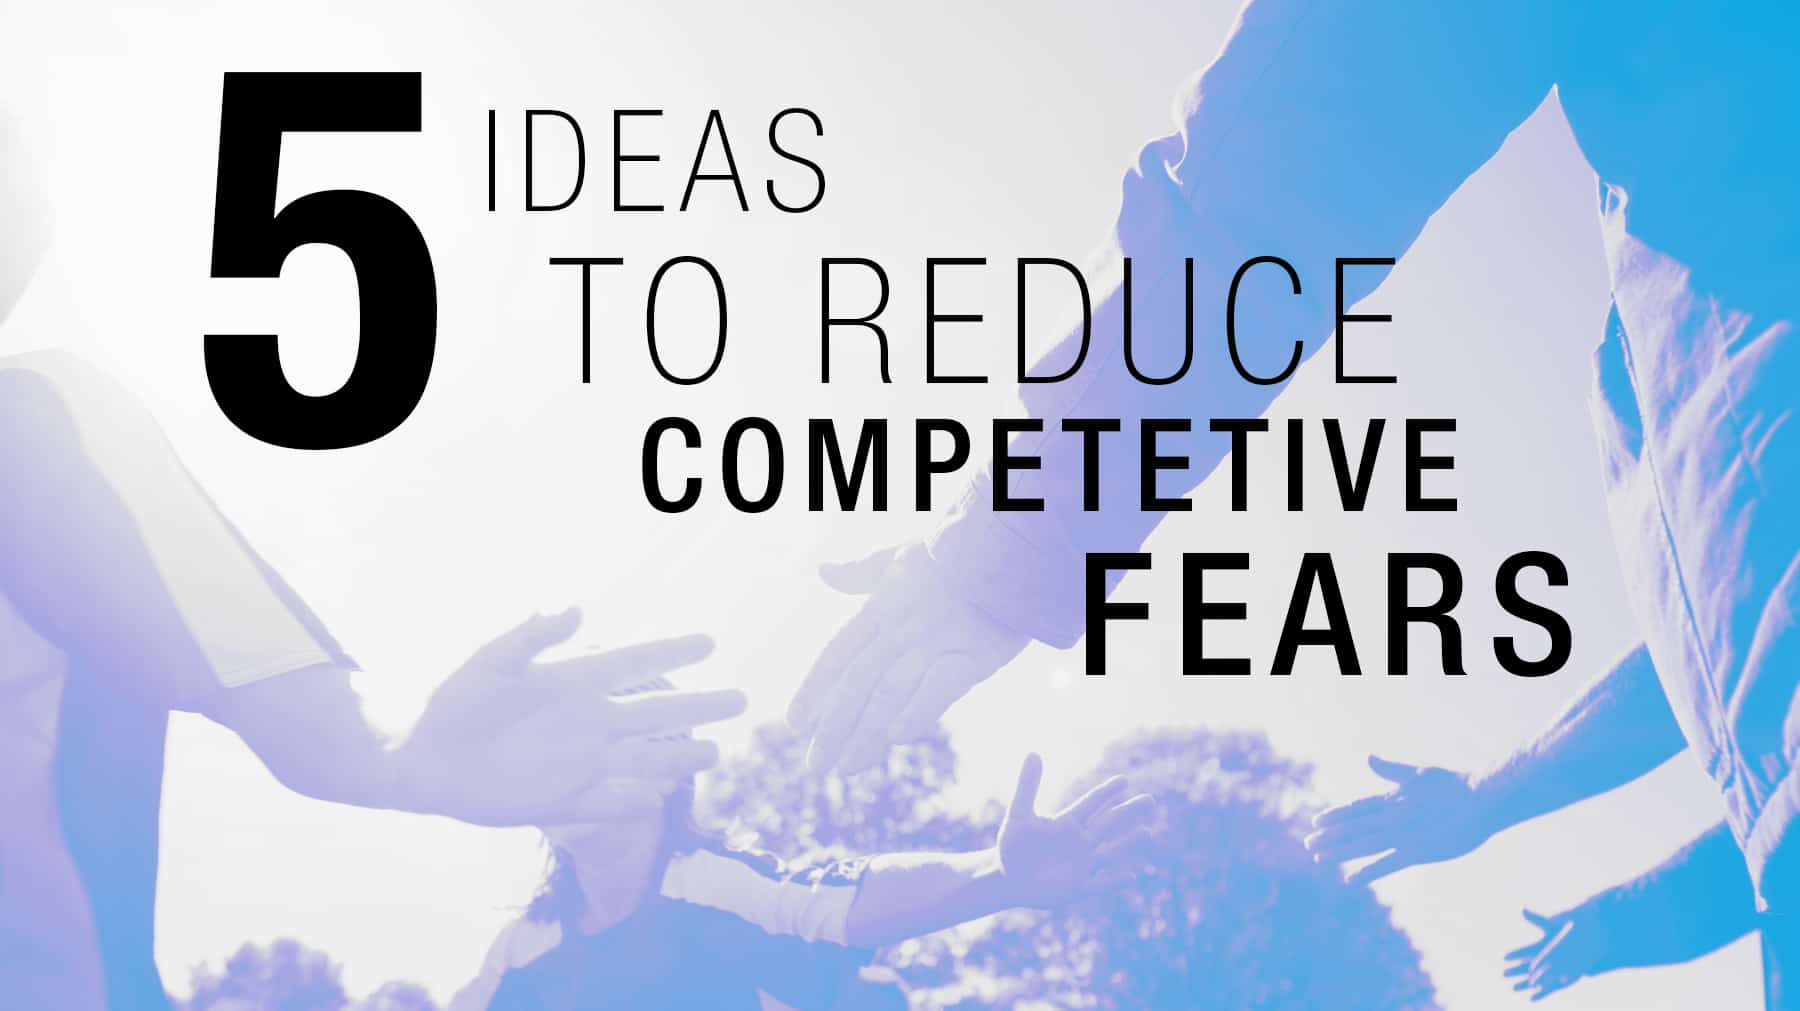 I5 ideas to reduce competitive fears